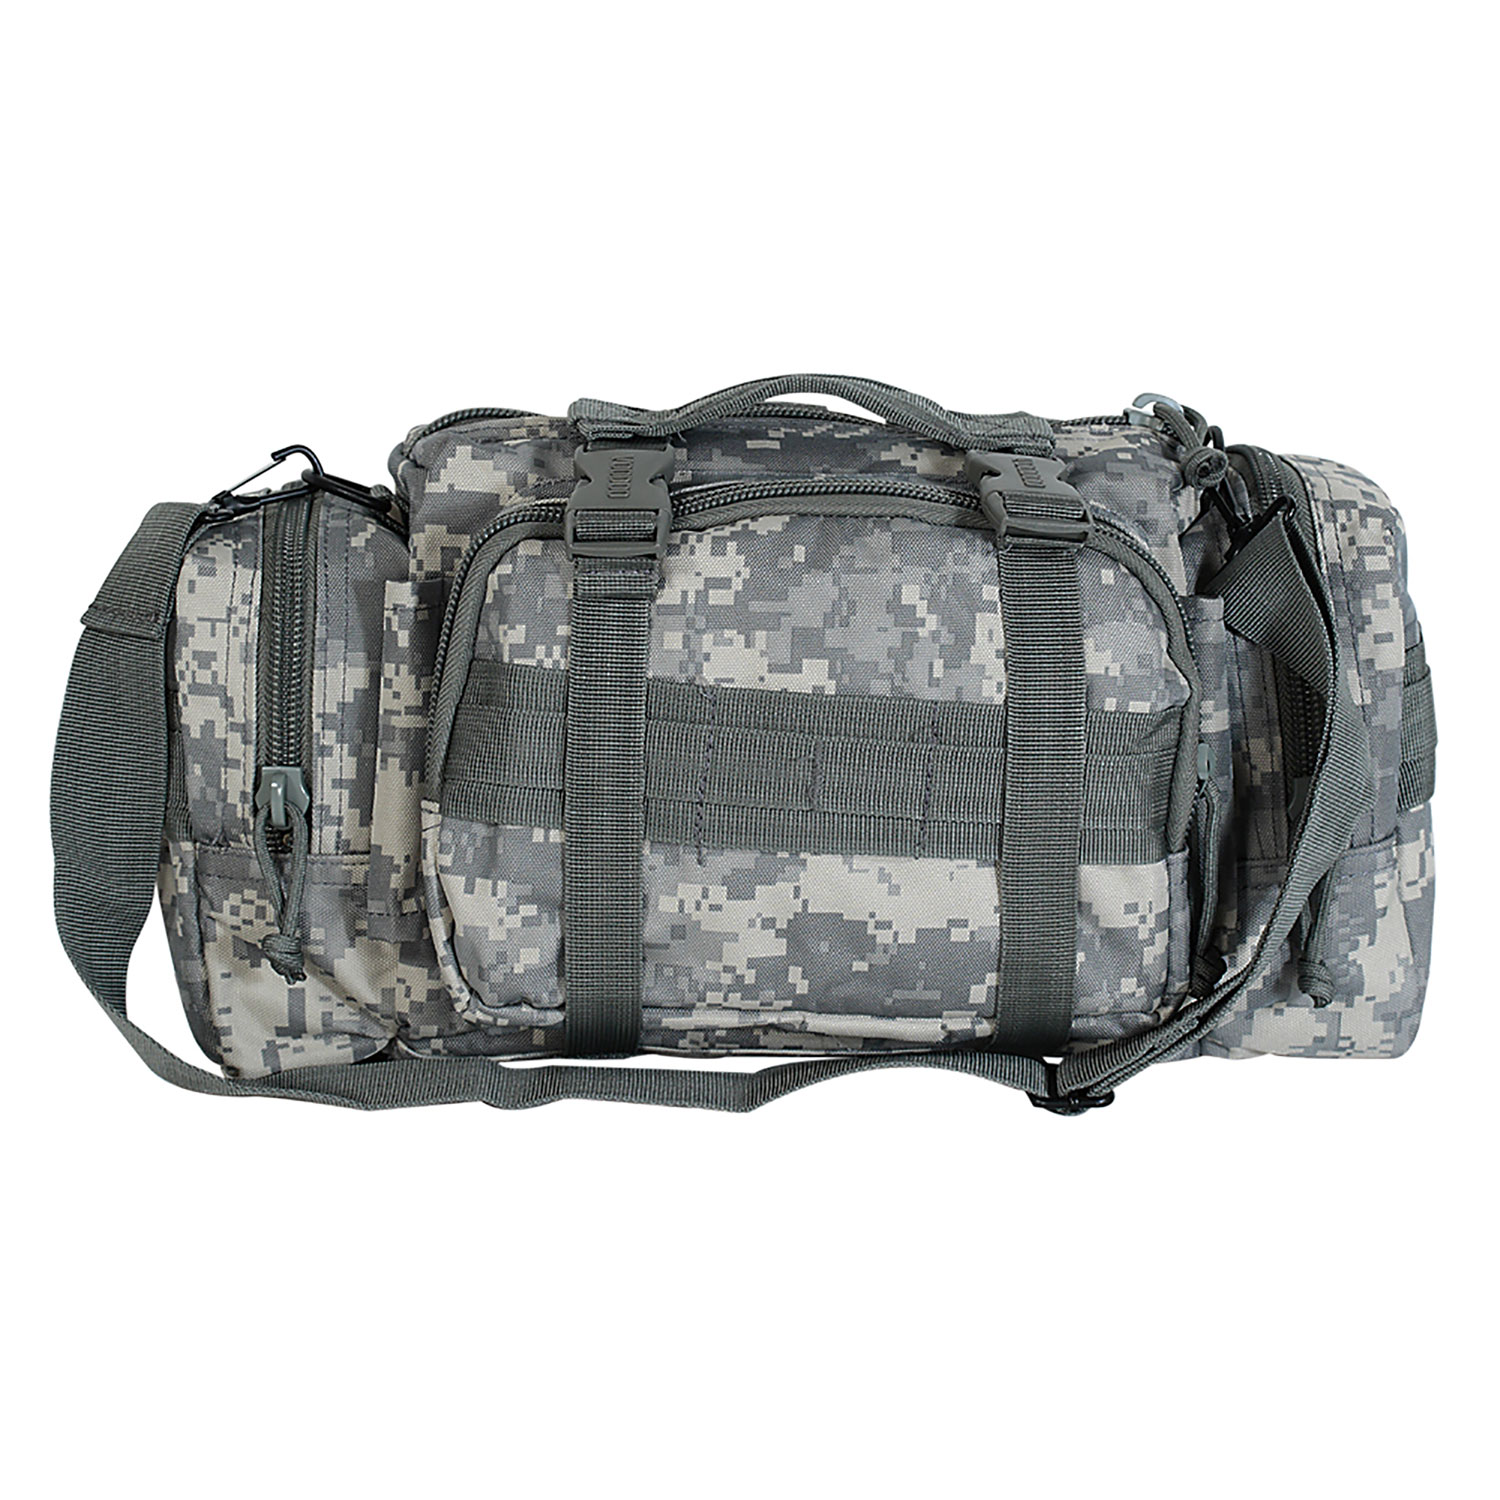 Voodoo Tactical Enlarged 3 Way Deployment Bag